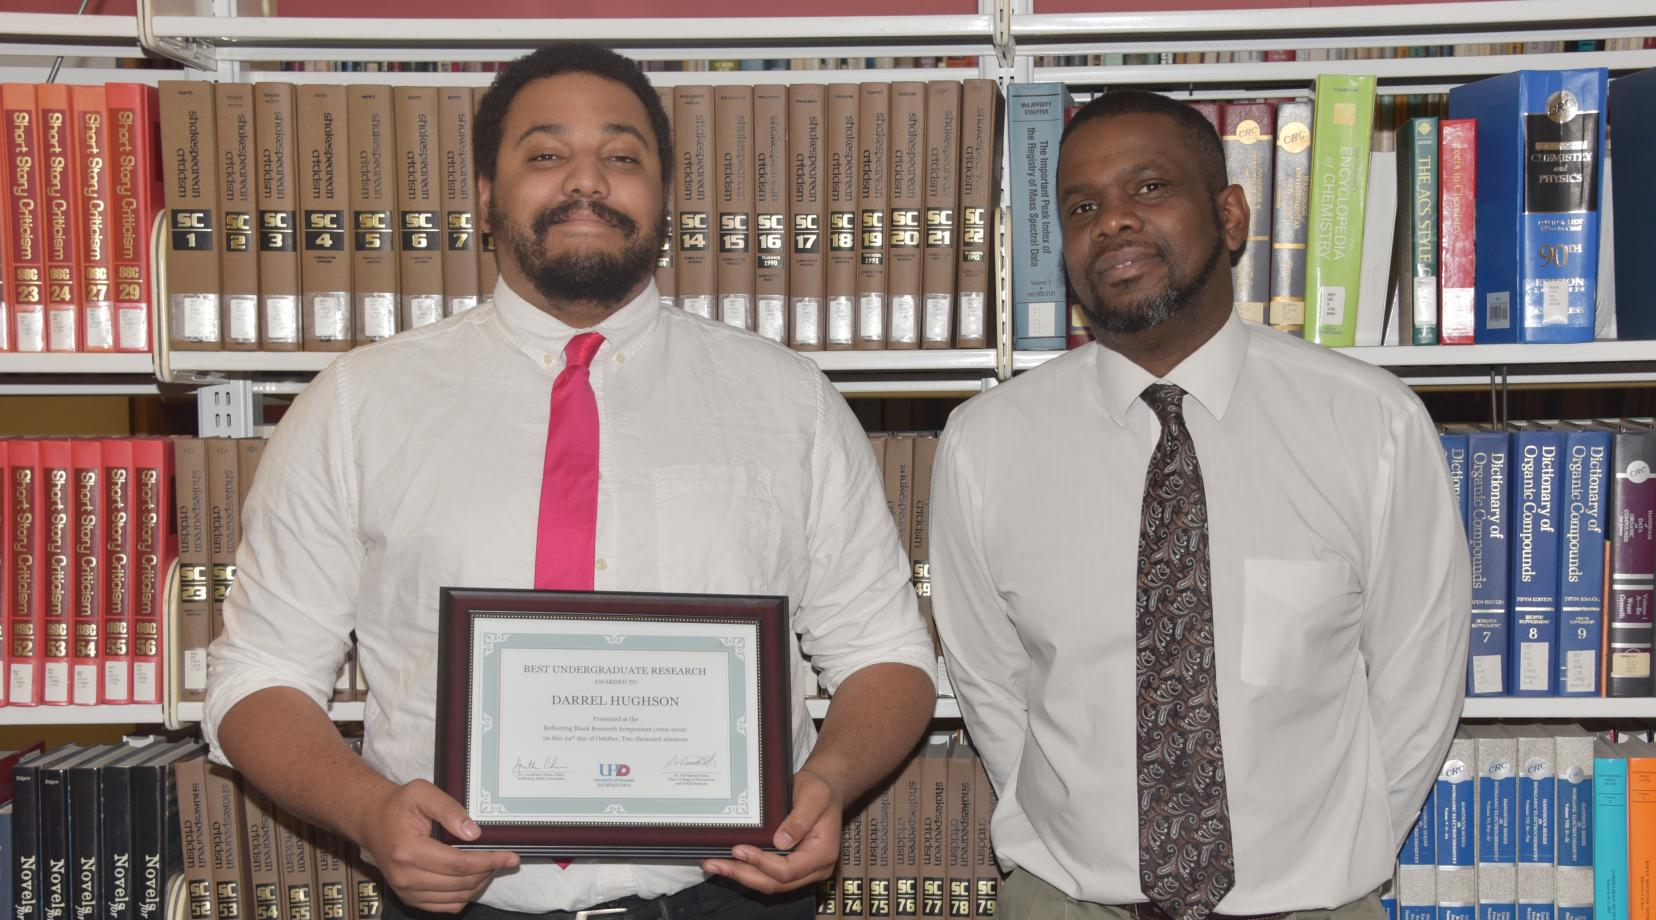 Darrell Hughson,(r), a junior English major, recently took the $500 first-place in a research presentation competition in a national symposium in Houston, Texas.